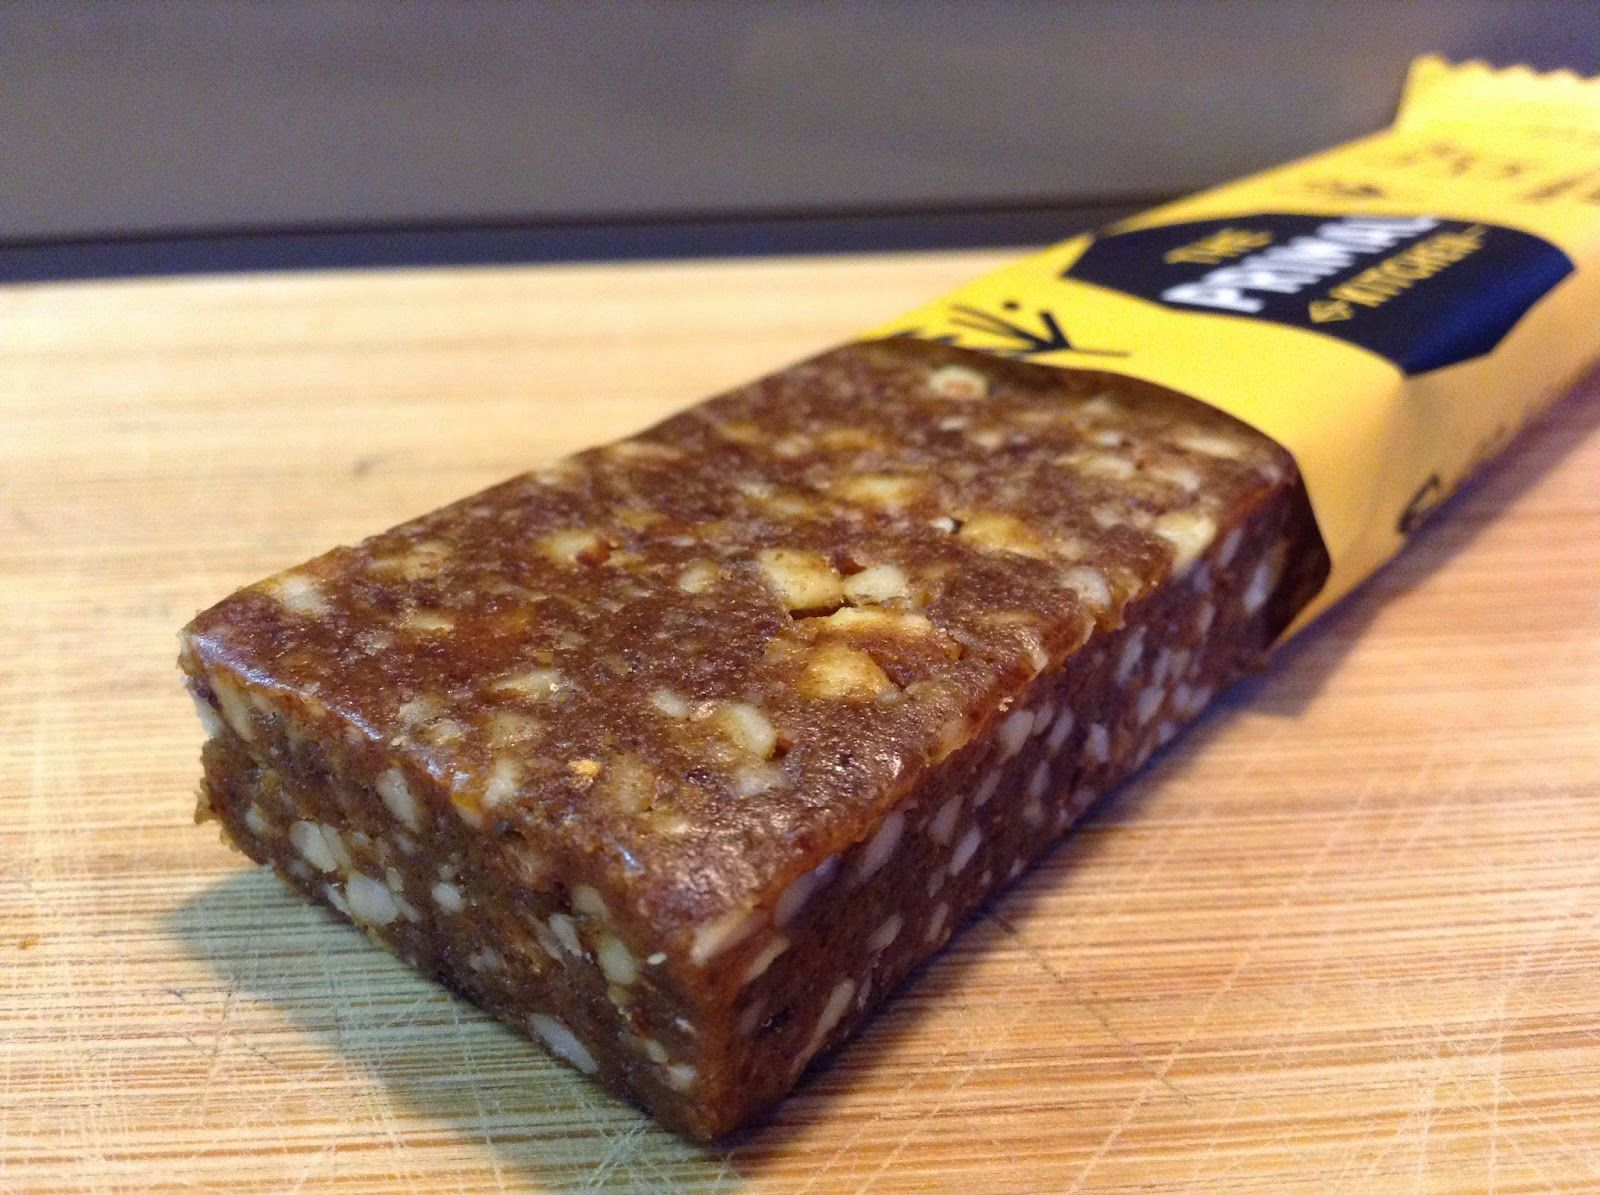 Product Review: The Primal Kitchen Bar #whole30 #paleo